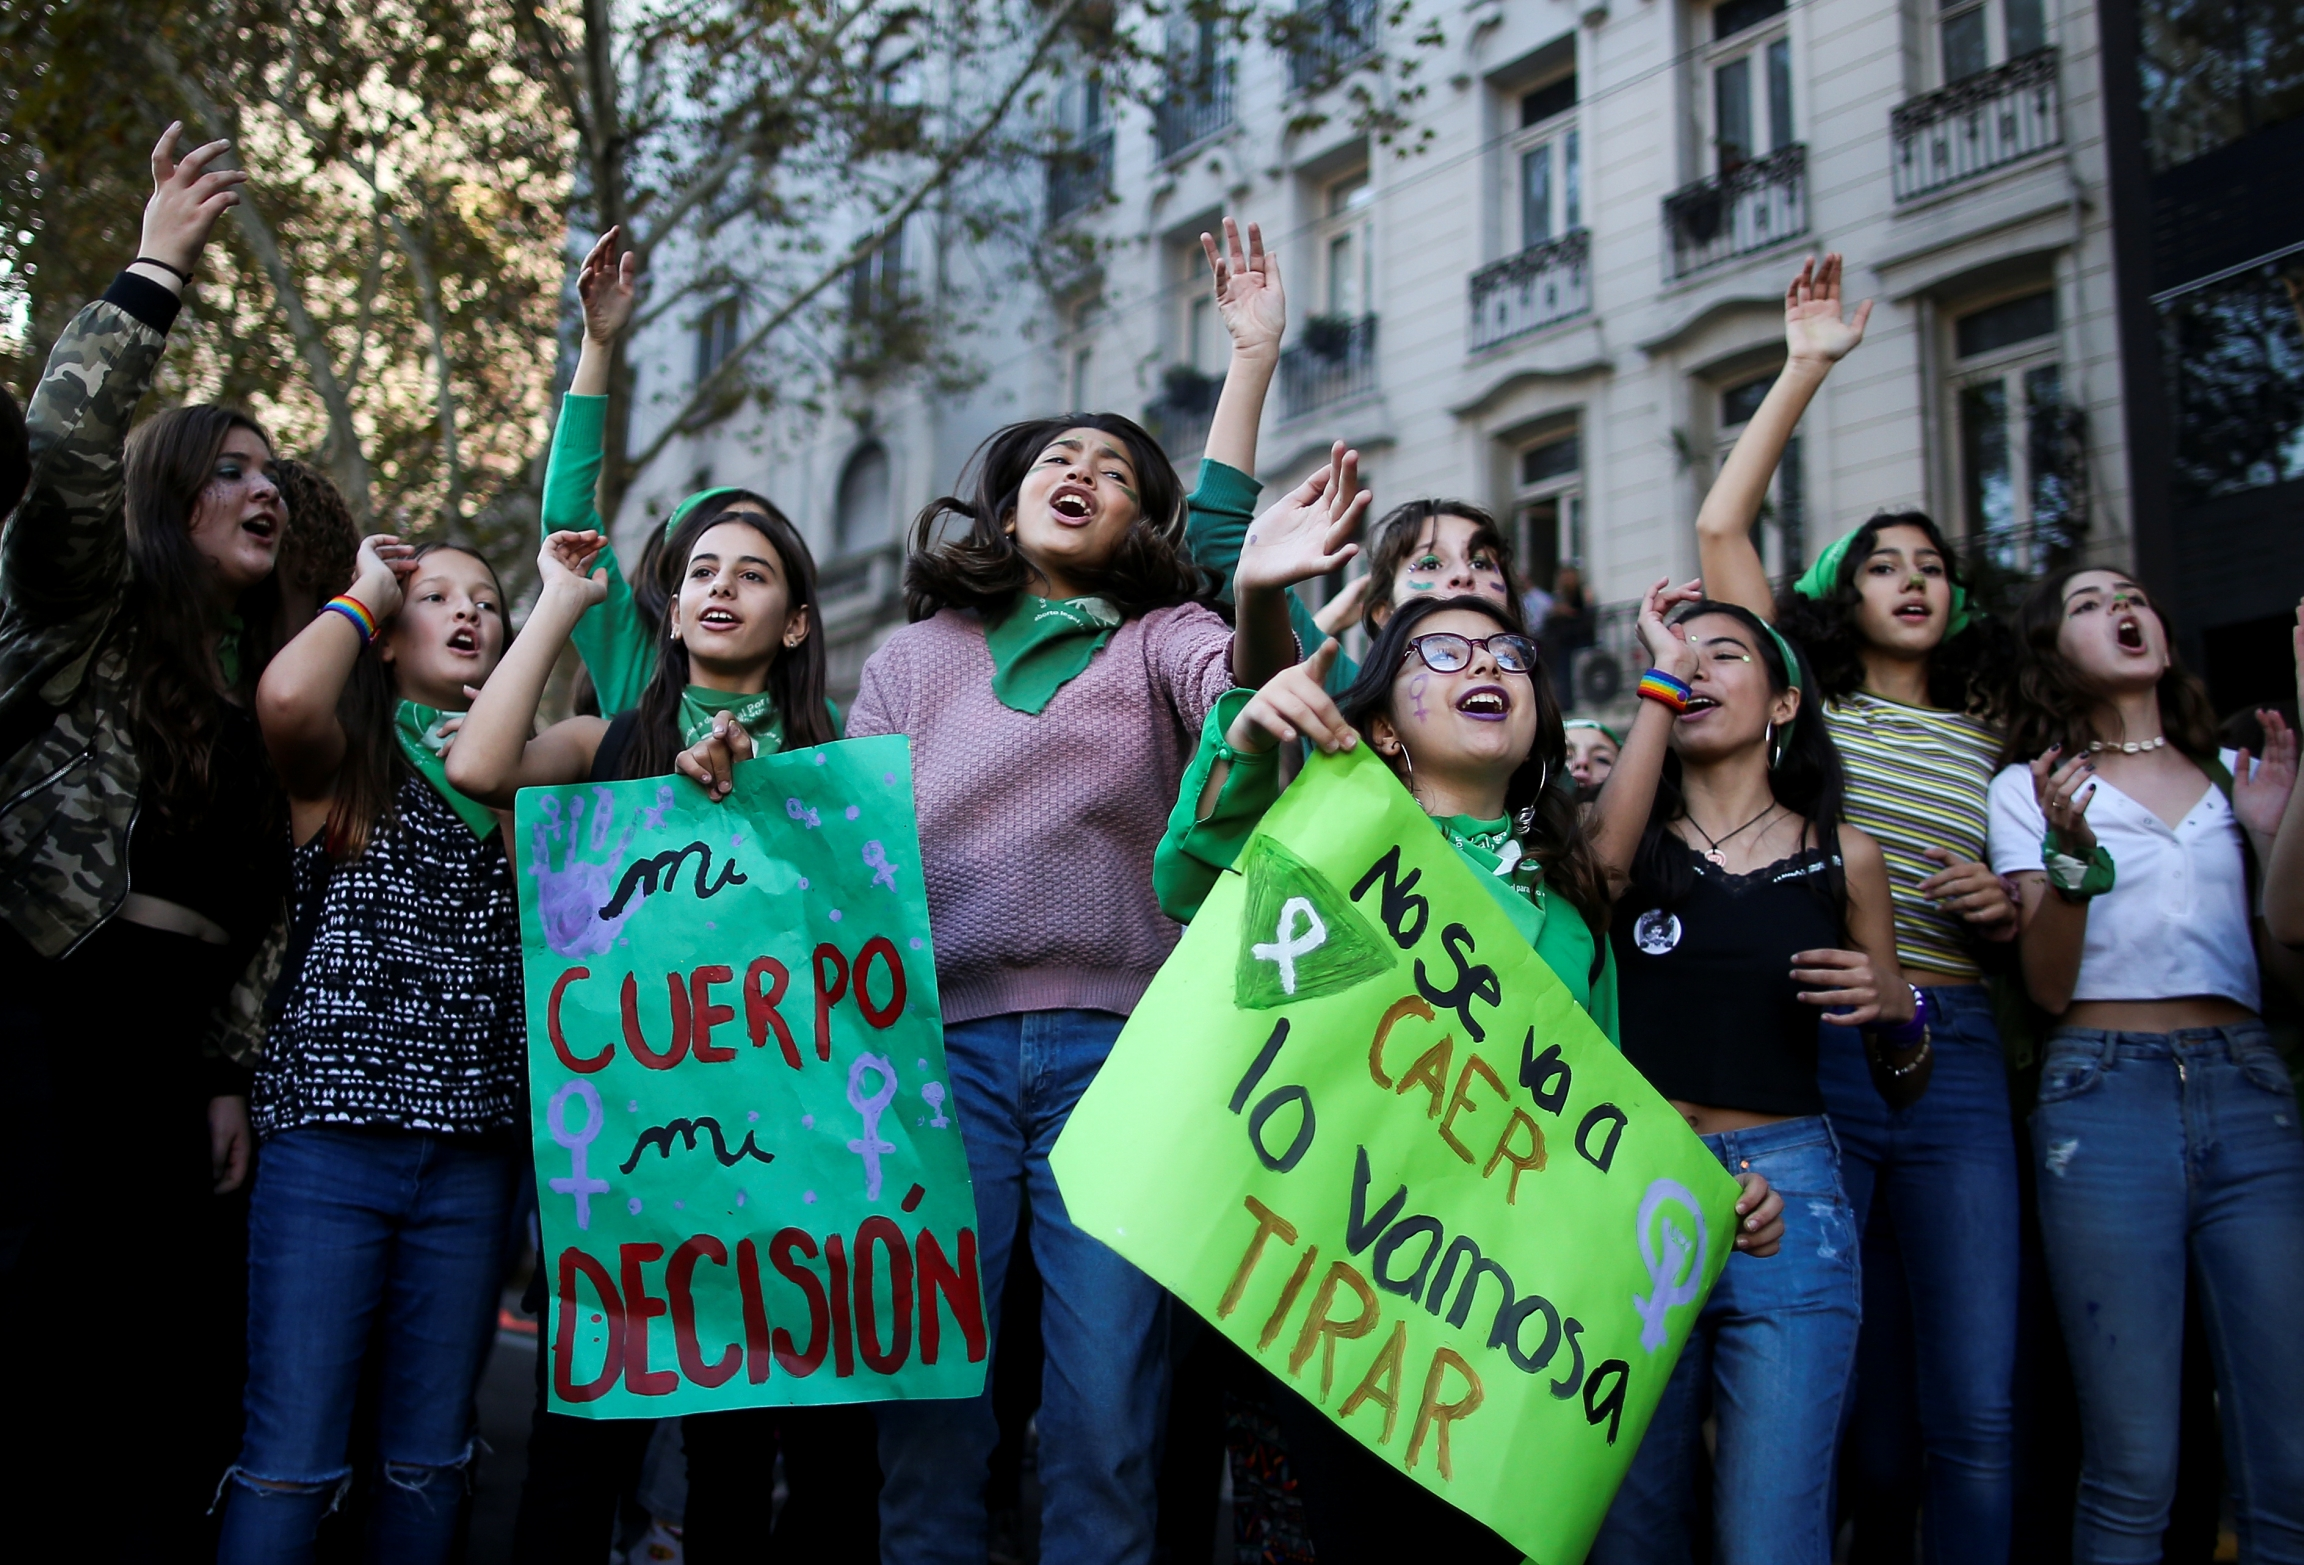 Women stand together and hold sings in Spanish in a city.